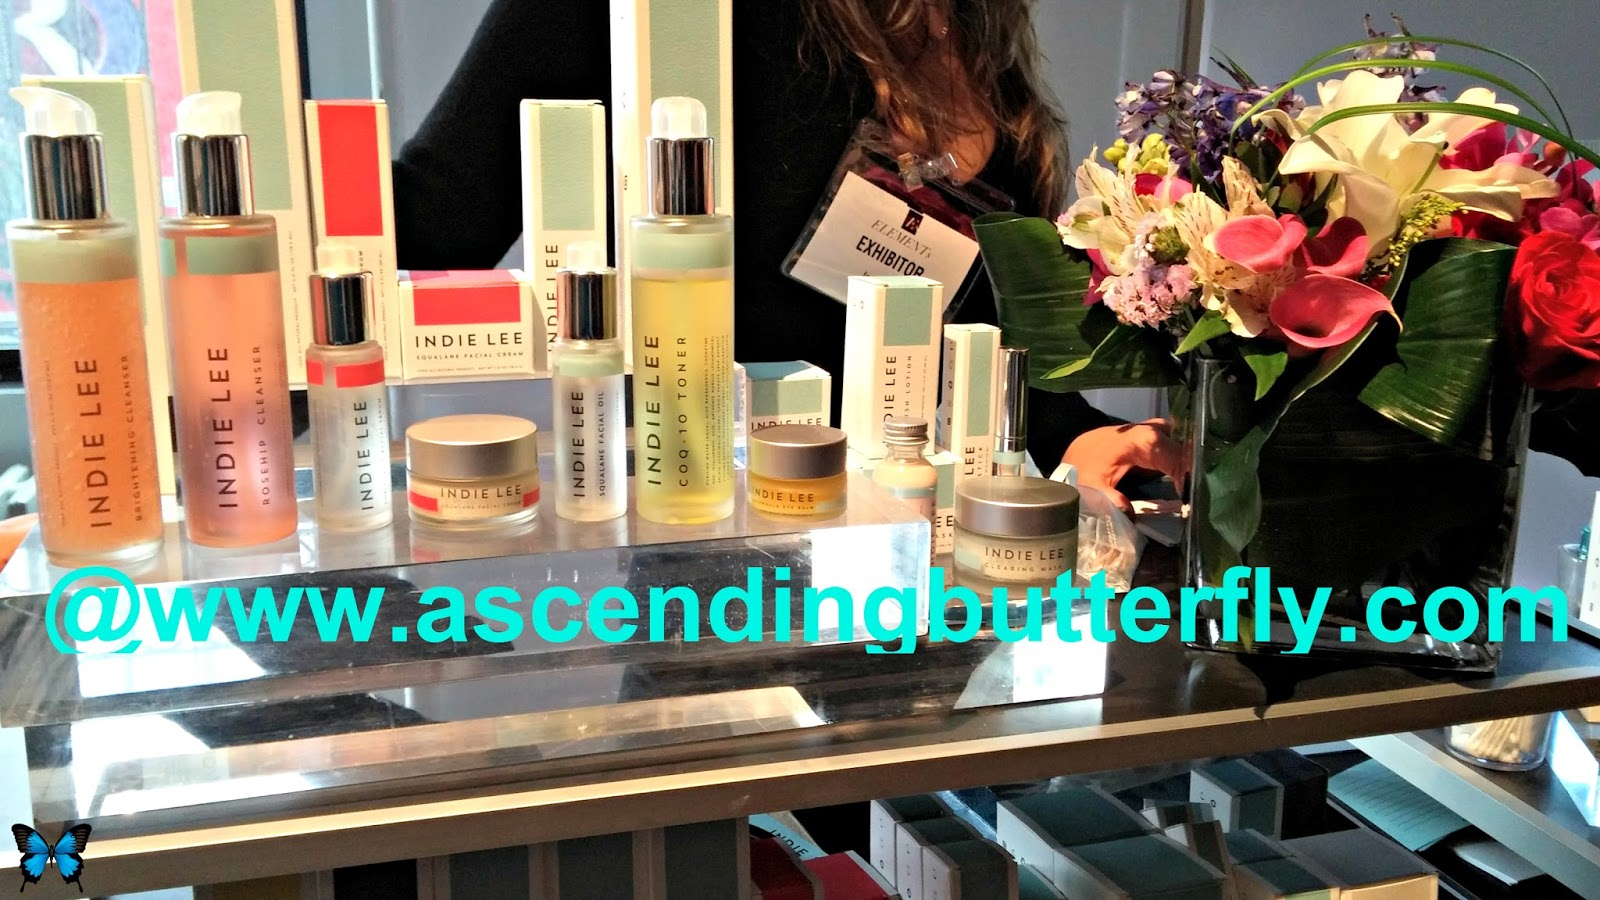 Eco Beauty Brand Indie Lee Products Display at Elements Showcase New York City February 2014